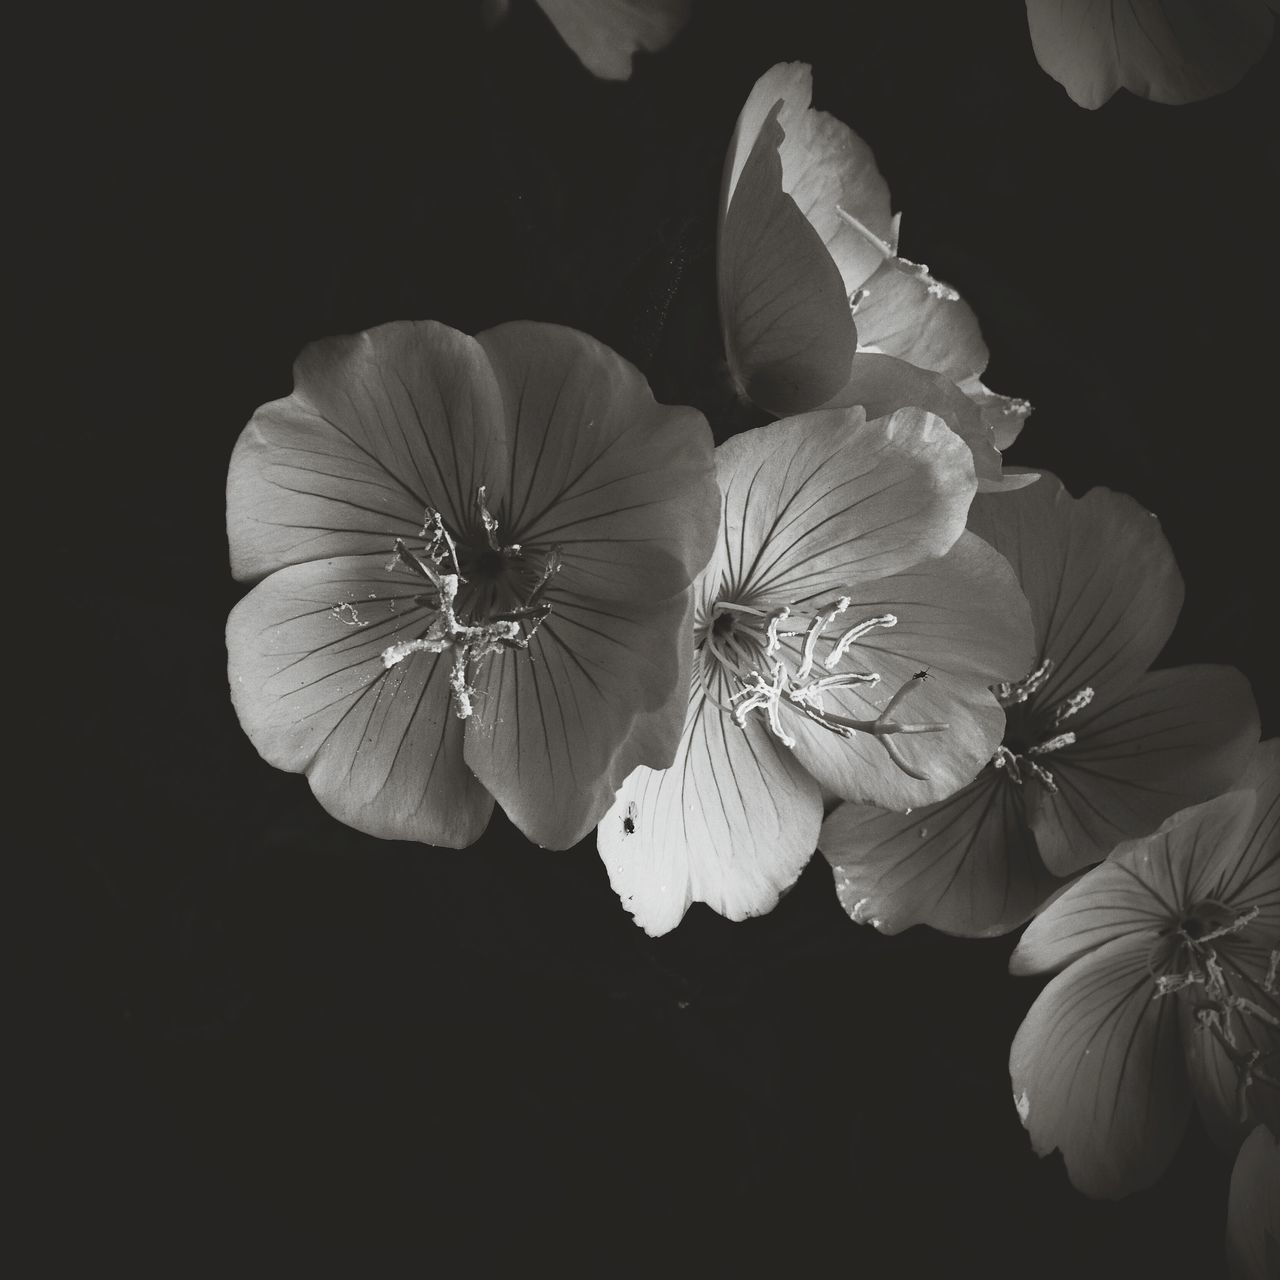 Taking Photos Check This Out Black And White Photography Black And White From My Point Of View Eye4photography  EyeEm Gallery Black And White Collection  Flower Porn Getting Inspired Black And White Flower Collection Fine Art Photography